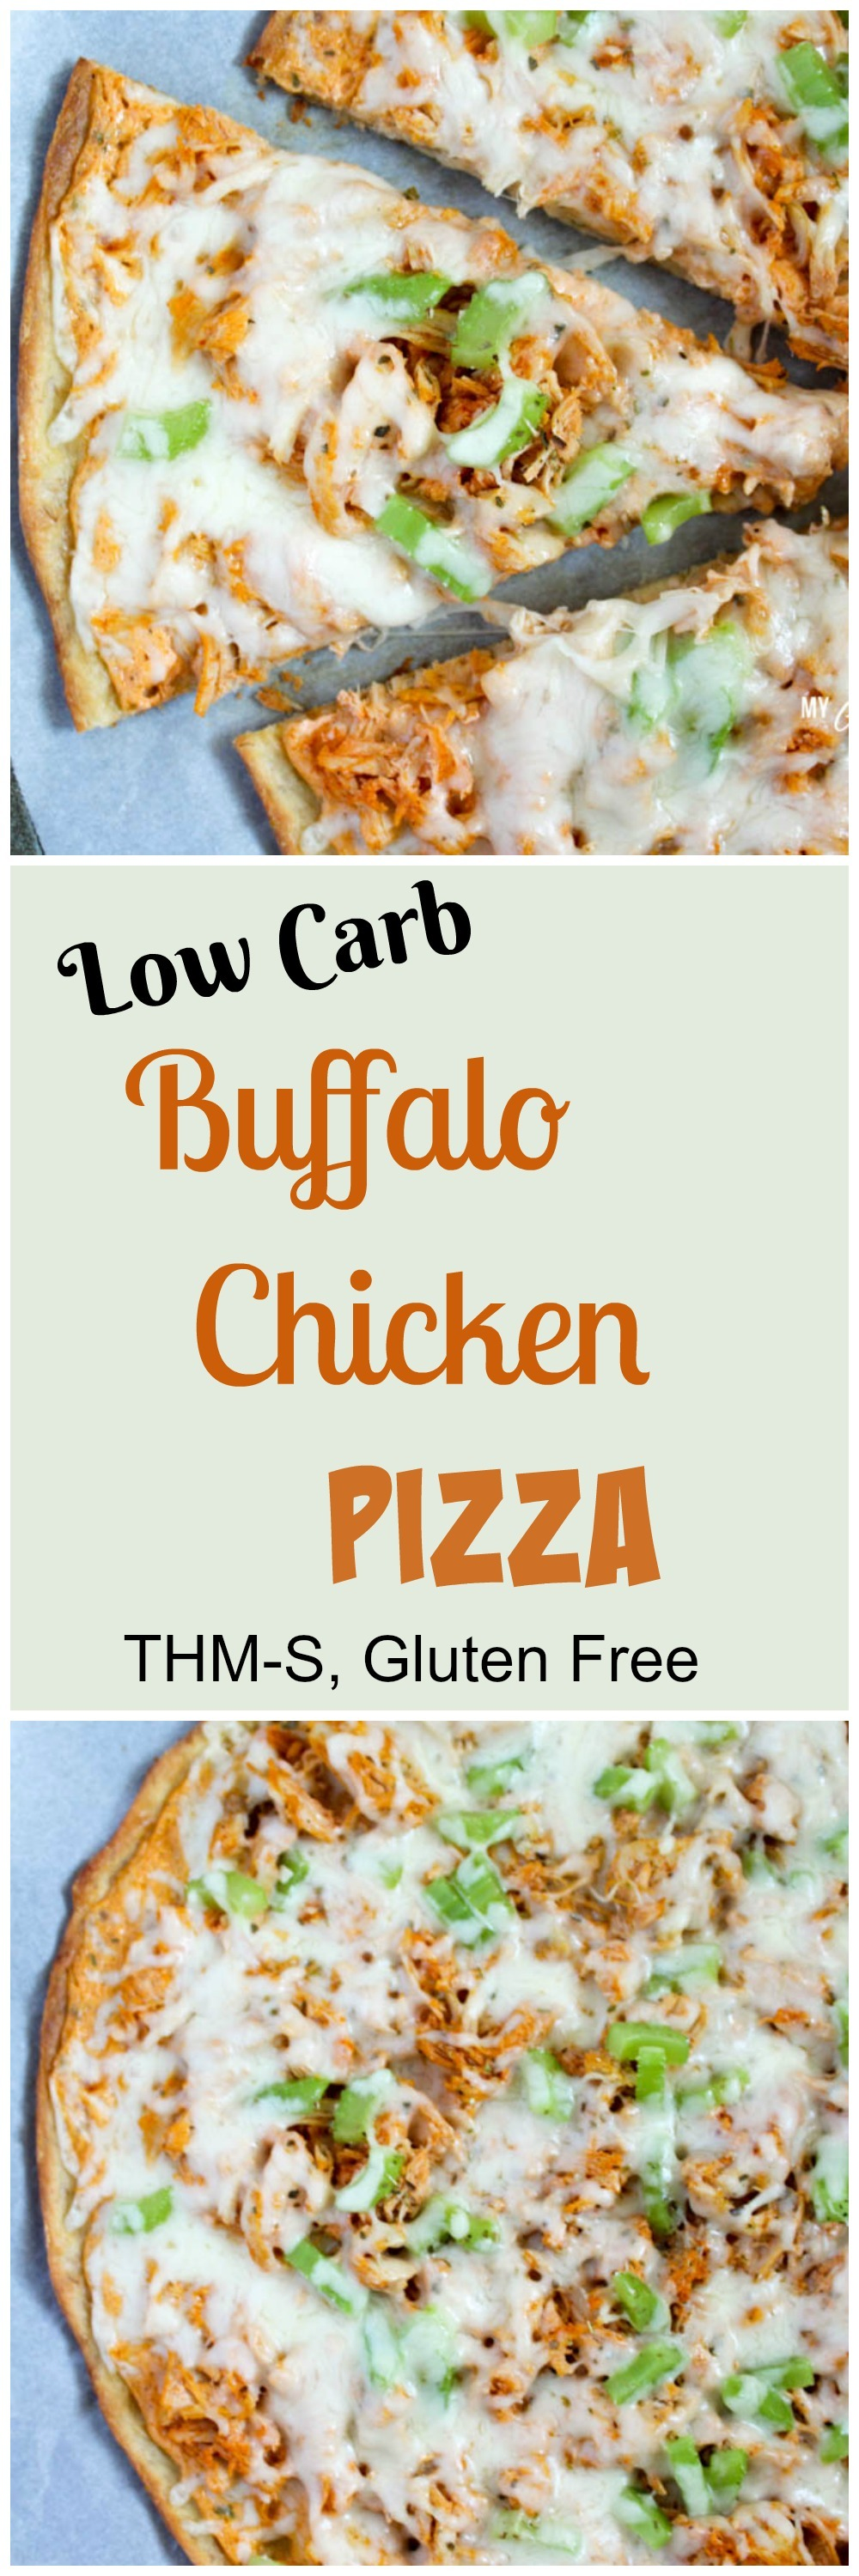 Low Carb Buffalo Chicken Pizza (THM-S, Gluten Free)